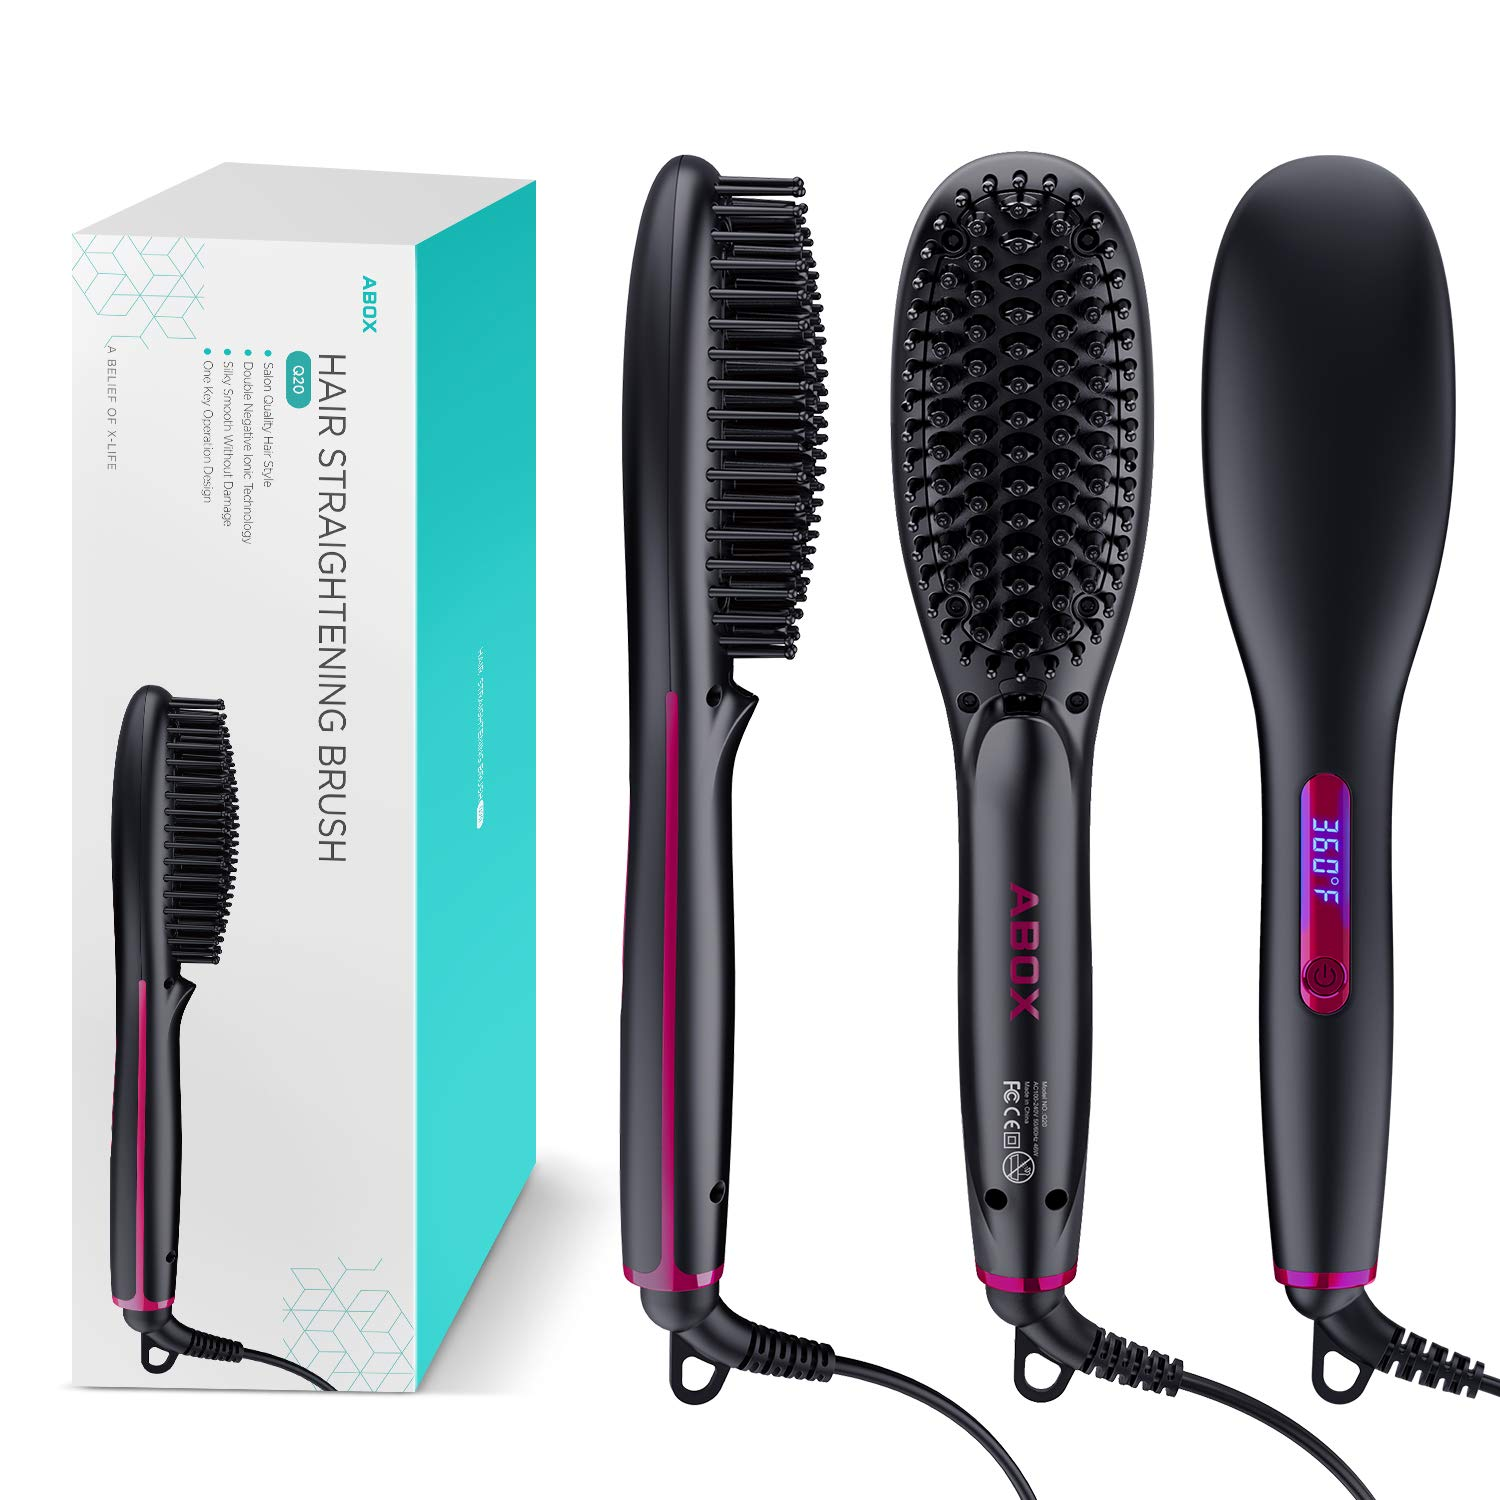 Hair Straightener Brush, ABOX Electric Ionic Hair Straightening Comb, 30s Fast Ceramic Heating with Anti-Scald, 8 Levels Adjustable Temperature with LED Display, Auto-Lock and Auto-Off, 2Pack by ABOX